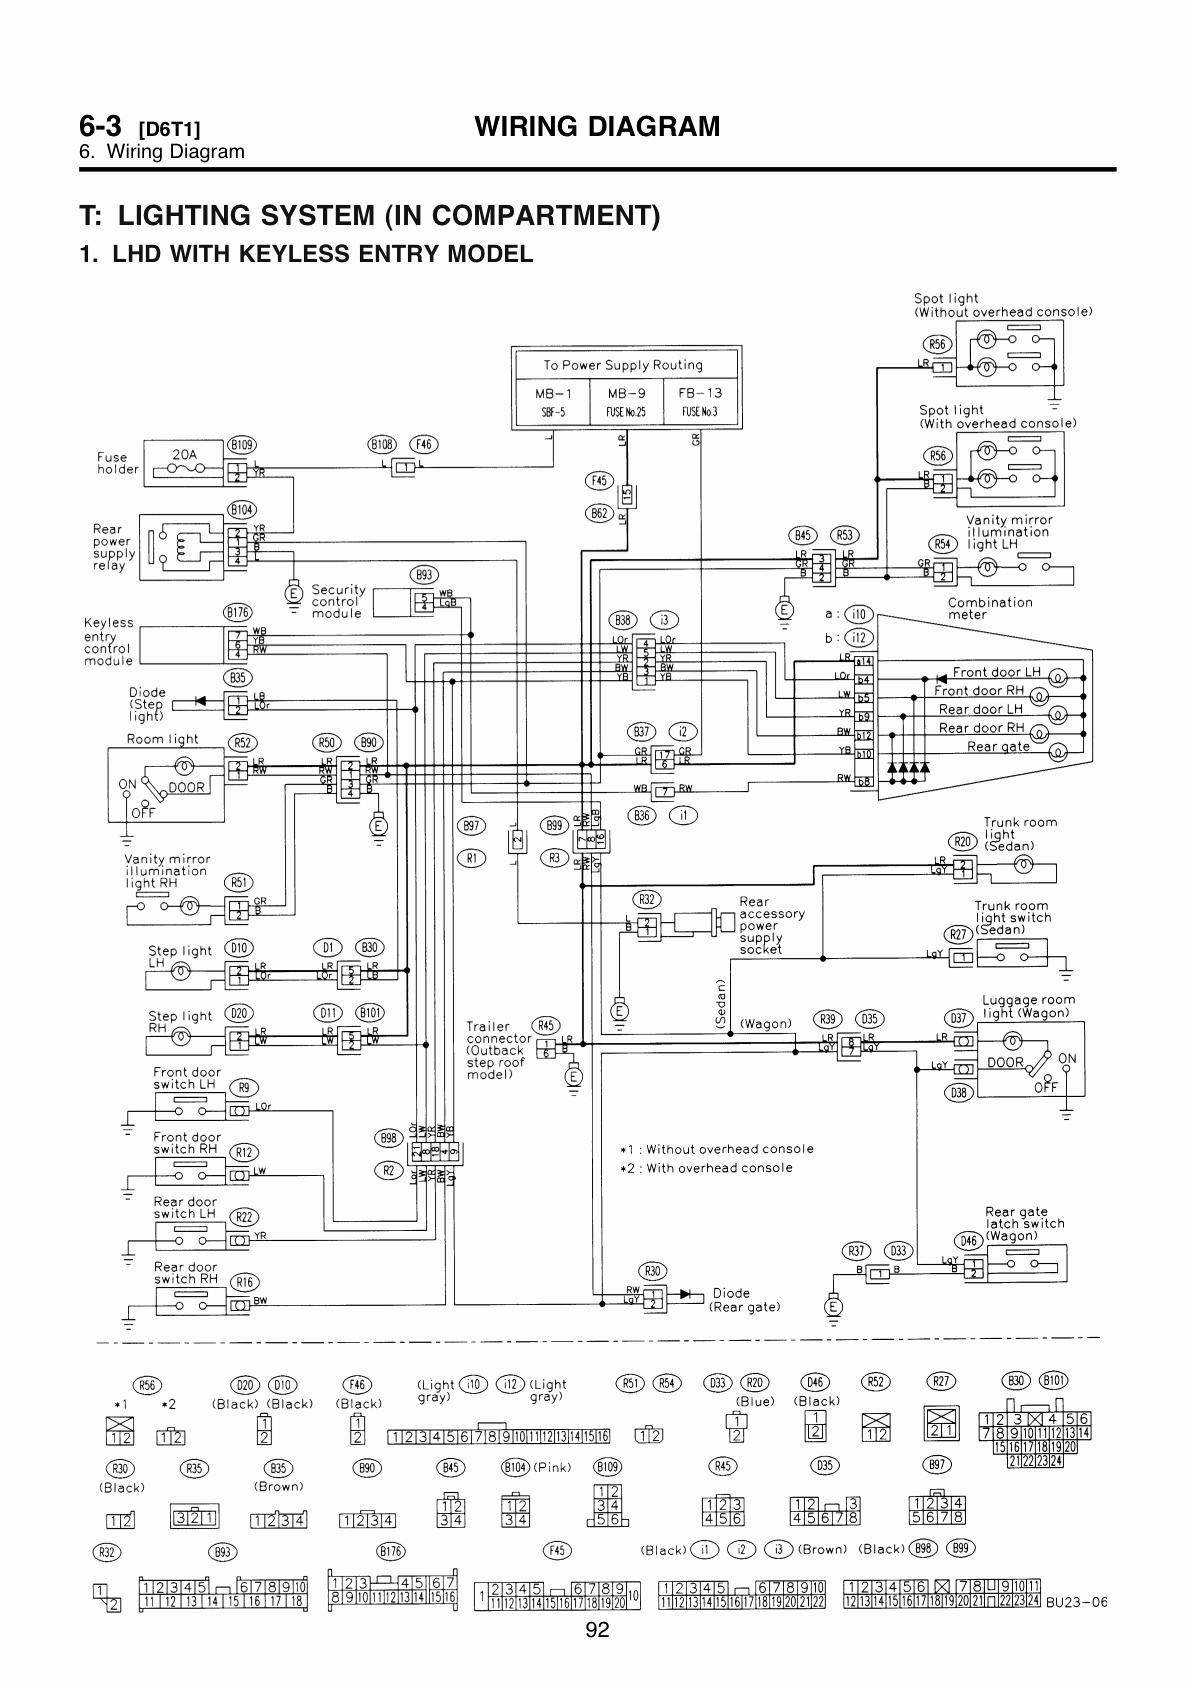 Honeywell St9120c4057 Wiring Diagram Download Sample Wire 50 Unique Stock 8